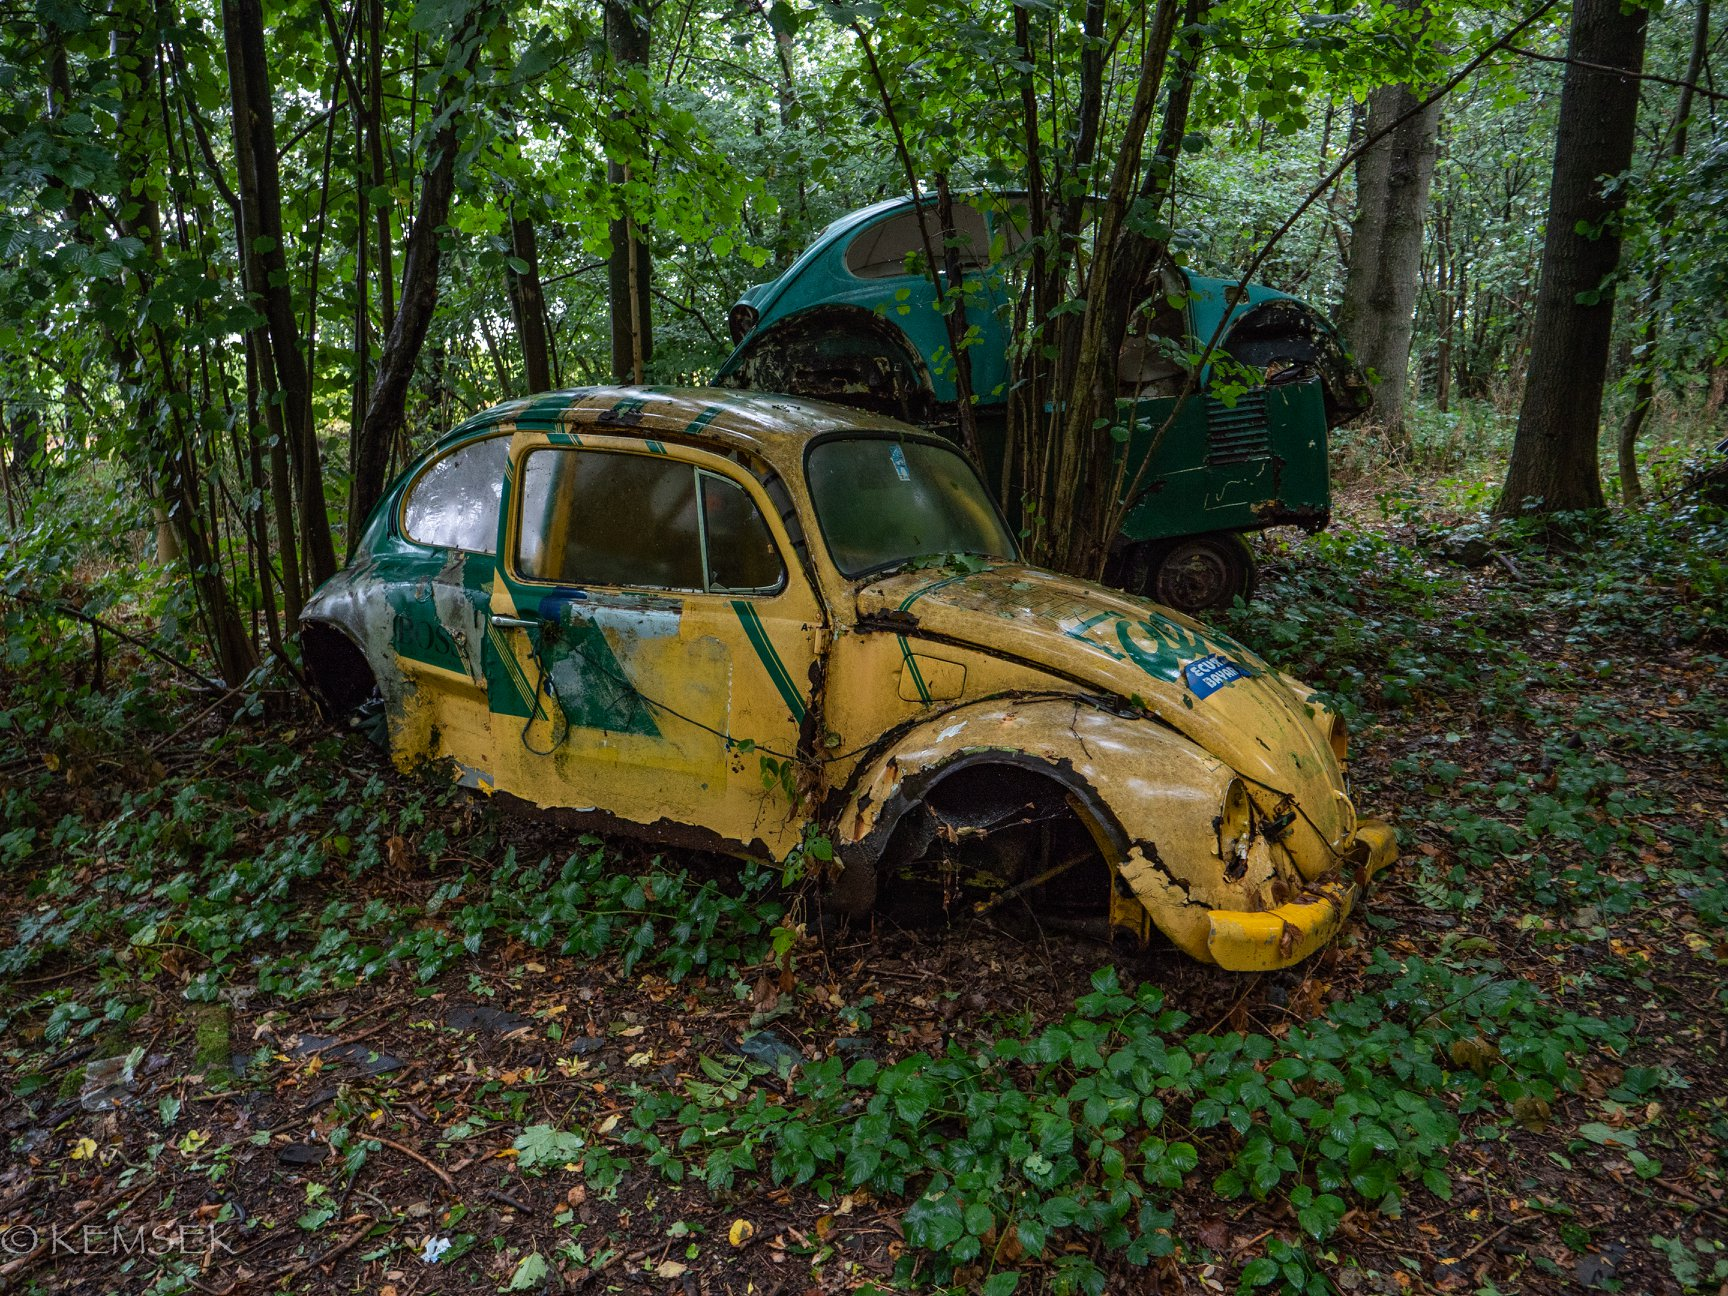 VW-in-rust-4